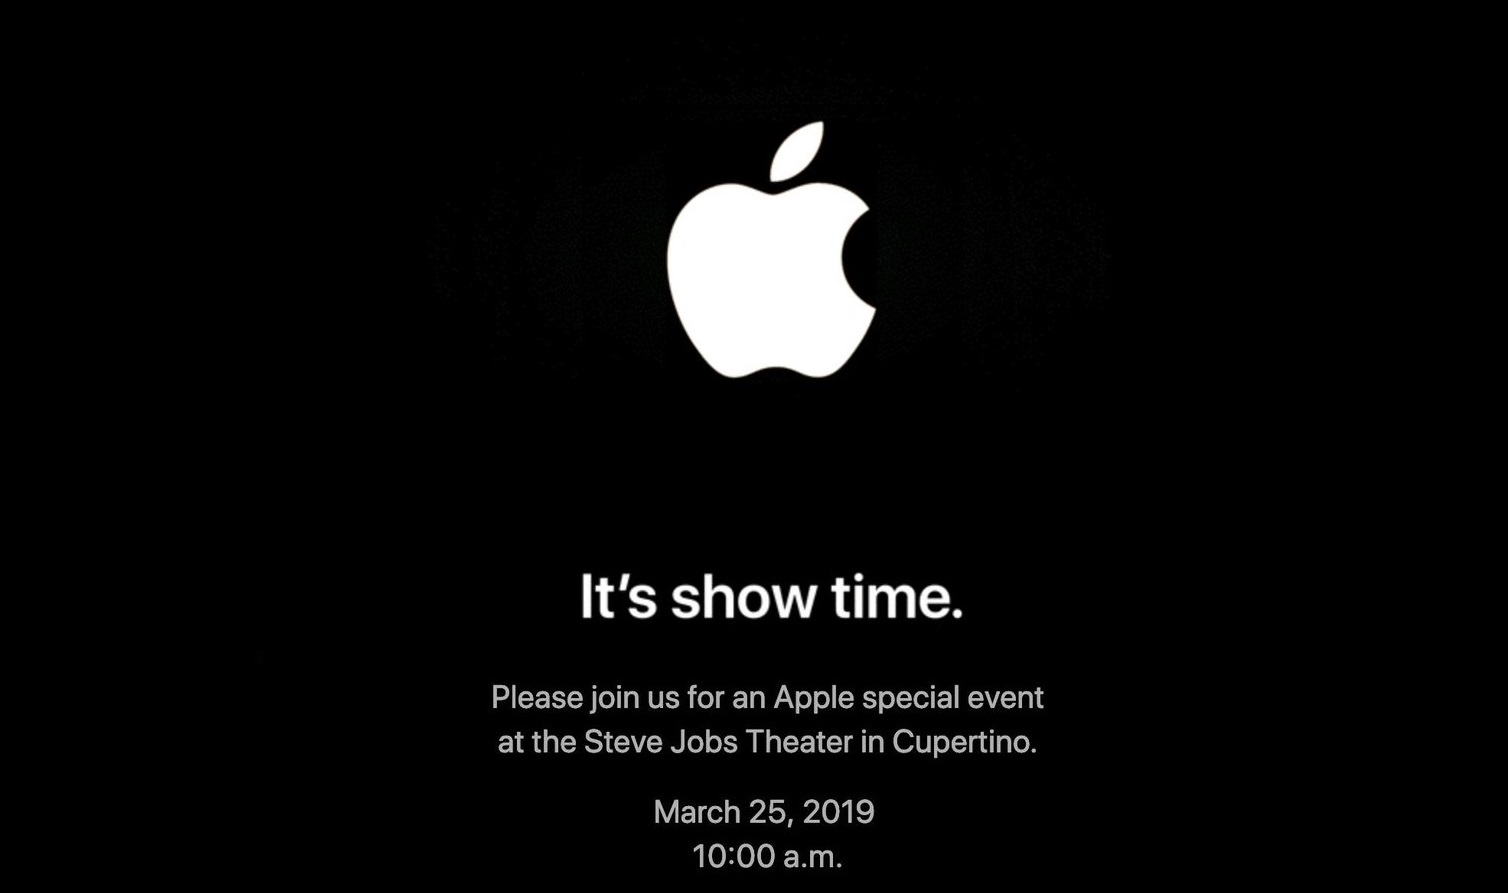 It's Showtime - Apple-Videodienst steht vor der Tür